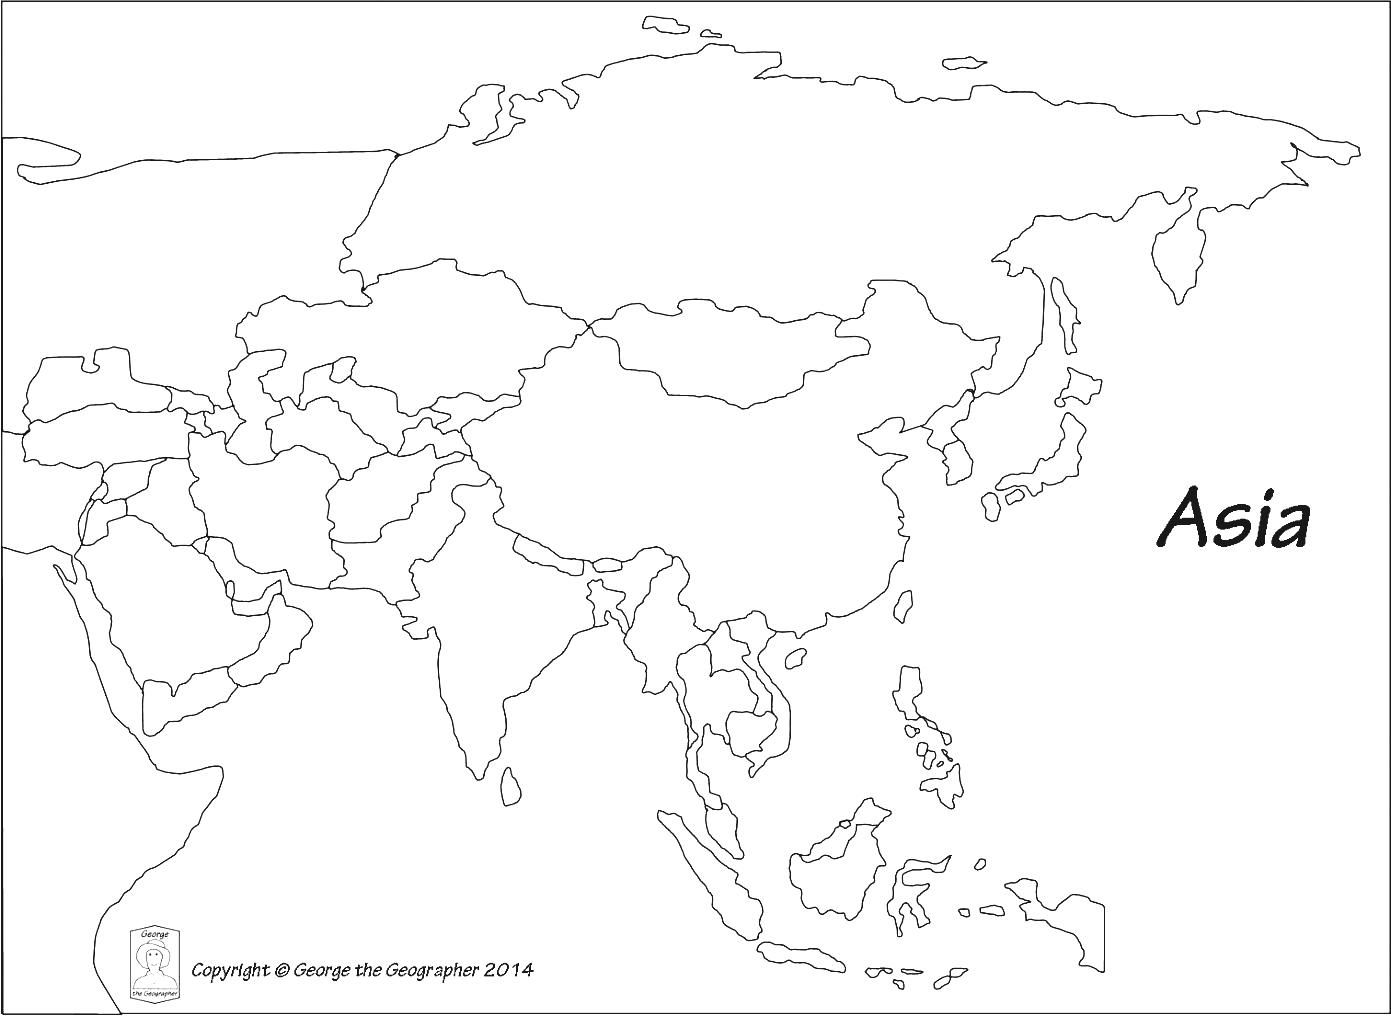 Asia Outline Map With Countries